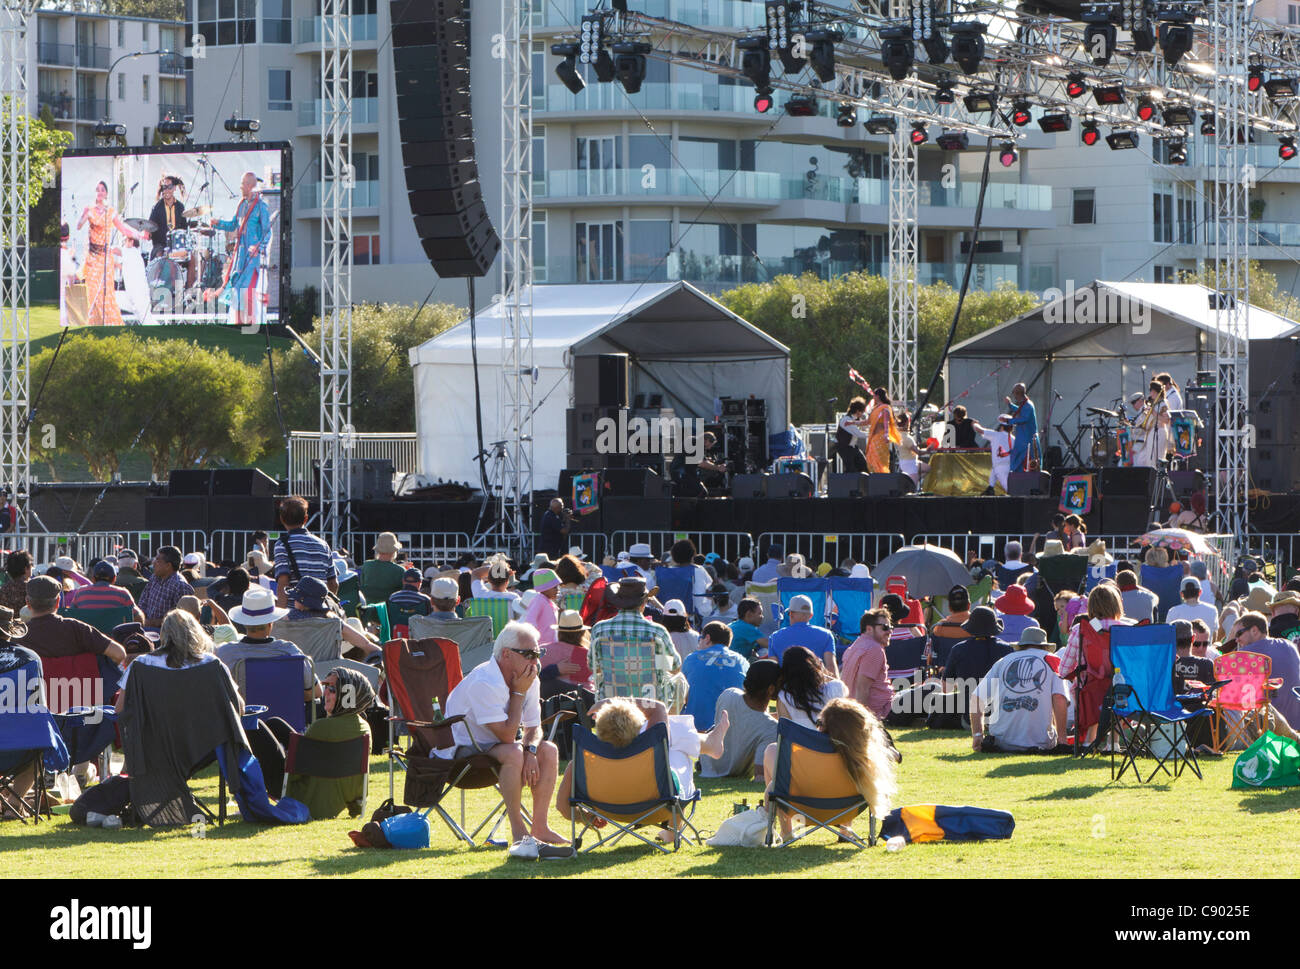 The Bombay Royale band play at the CHOGM 2011 Commonwealth Festival Finale Concert in South Perth, Western Australia - Stock Image